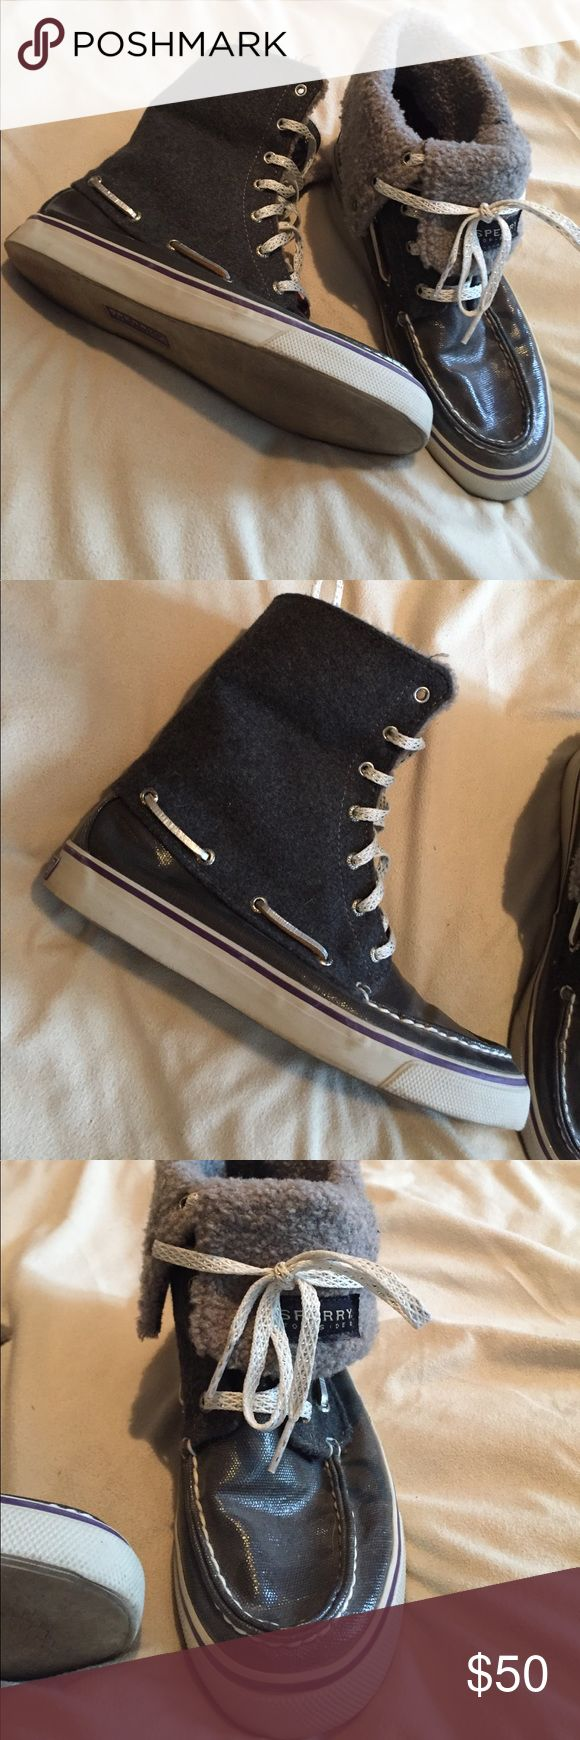 High top versatile sperry top siders! Sperry Top Sider, great condition size 71/2! Ask any questions or make me an offer!! Sperry Top-Sider Shoes Sneakers